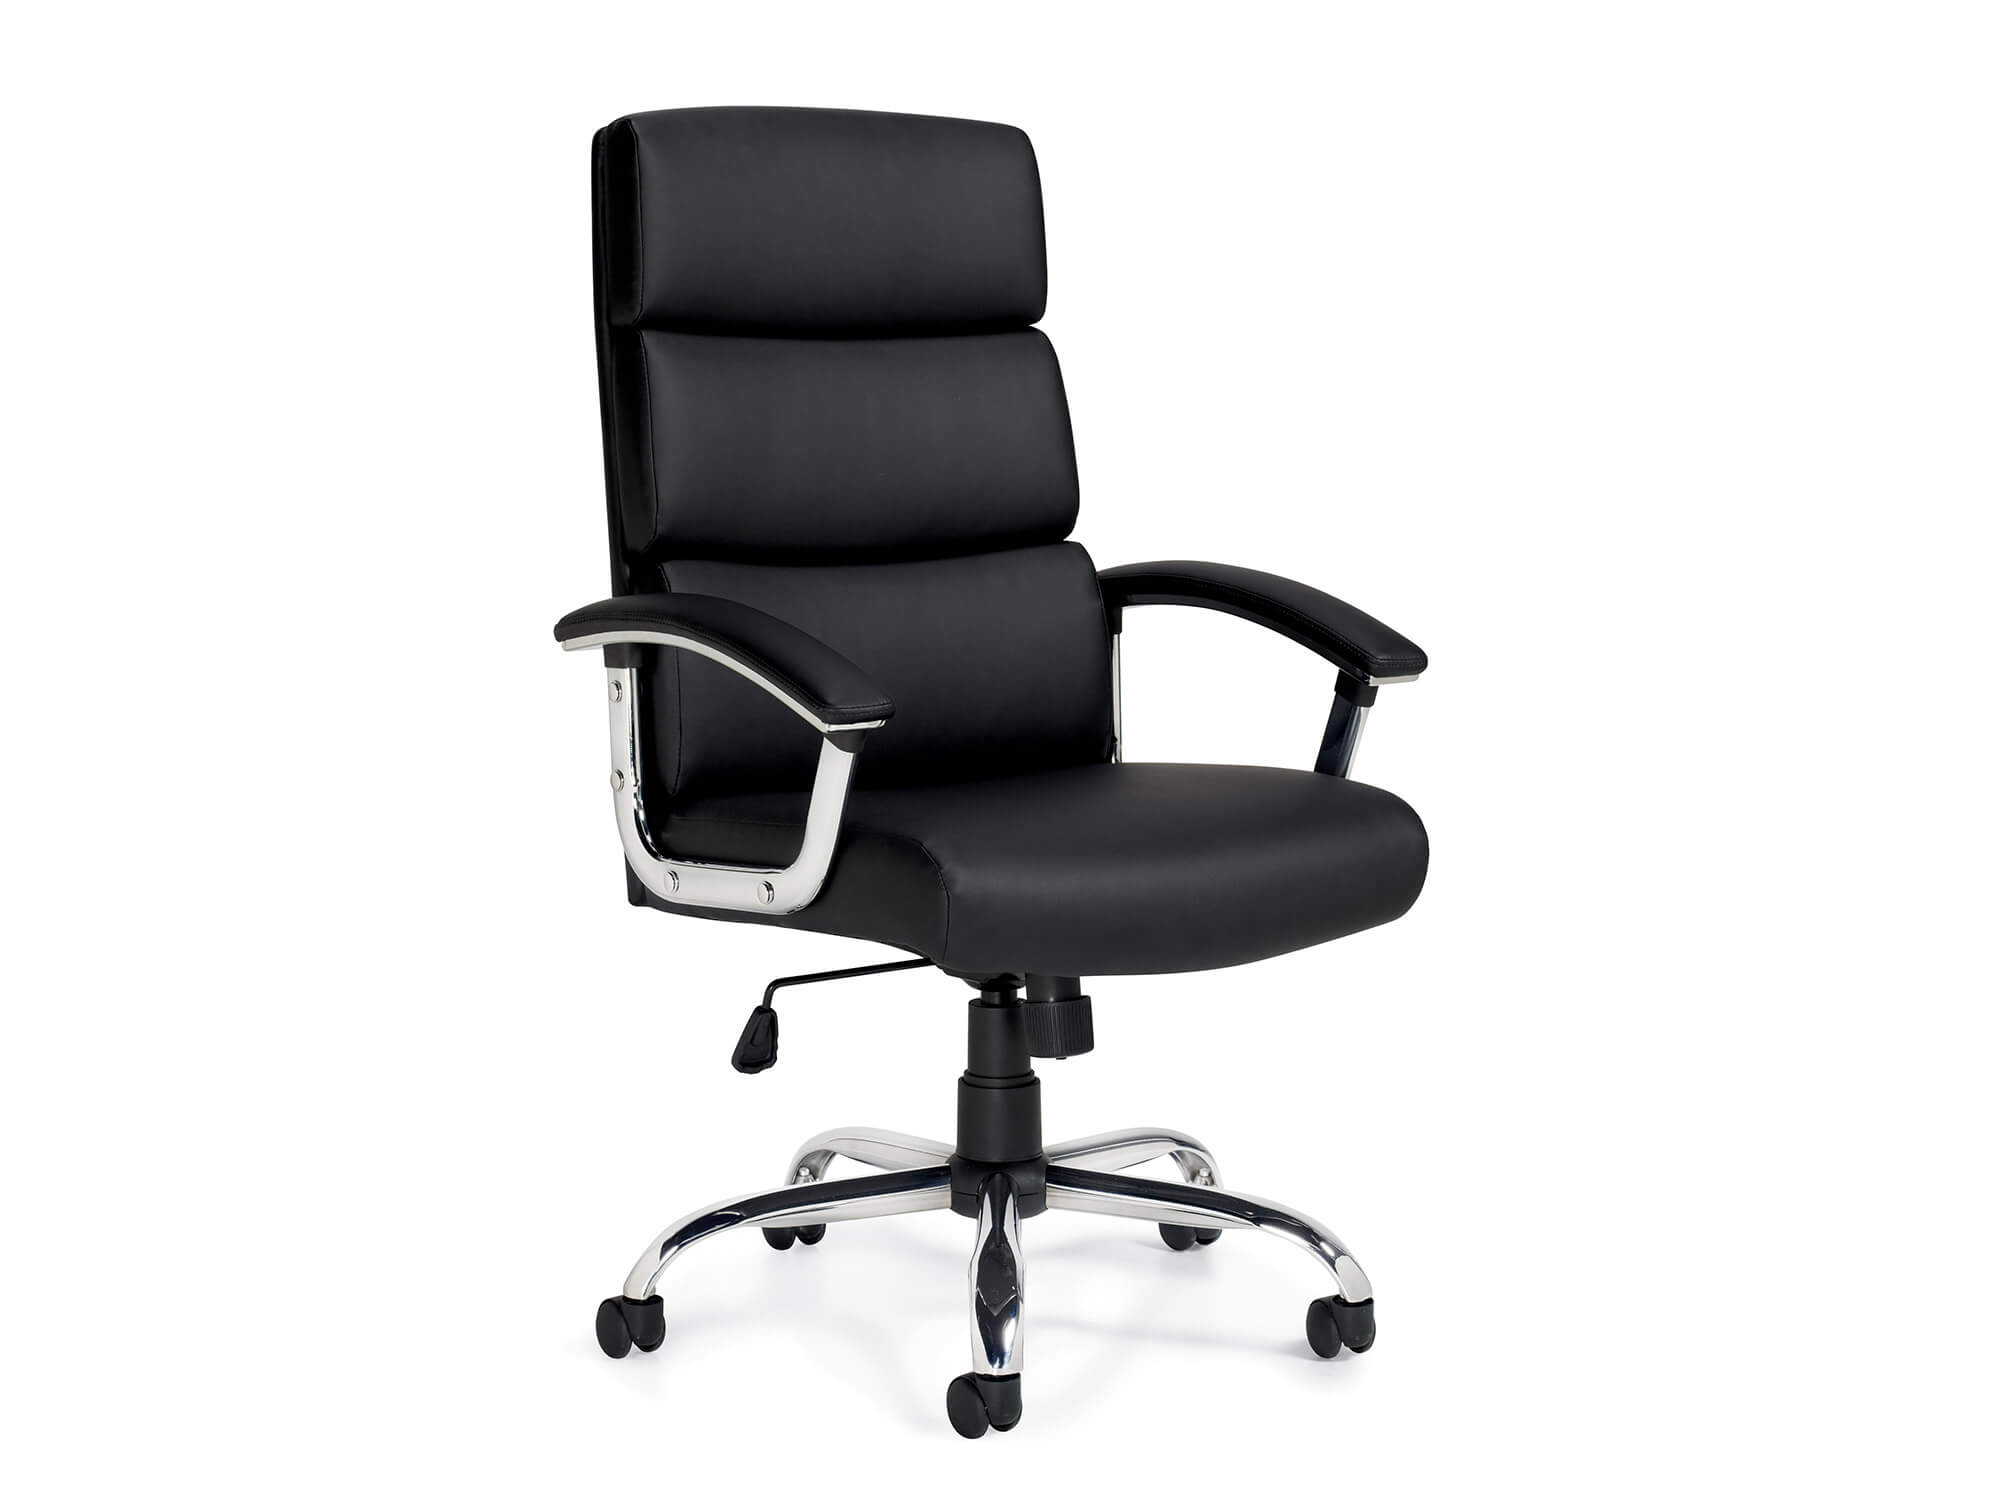 chairs-for-office-stylish-office-chairs.jpg